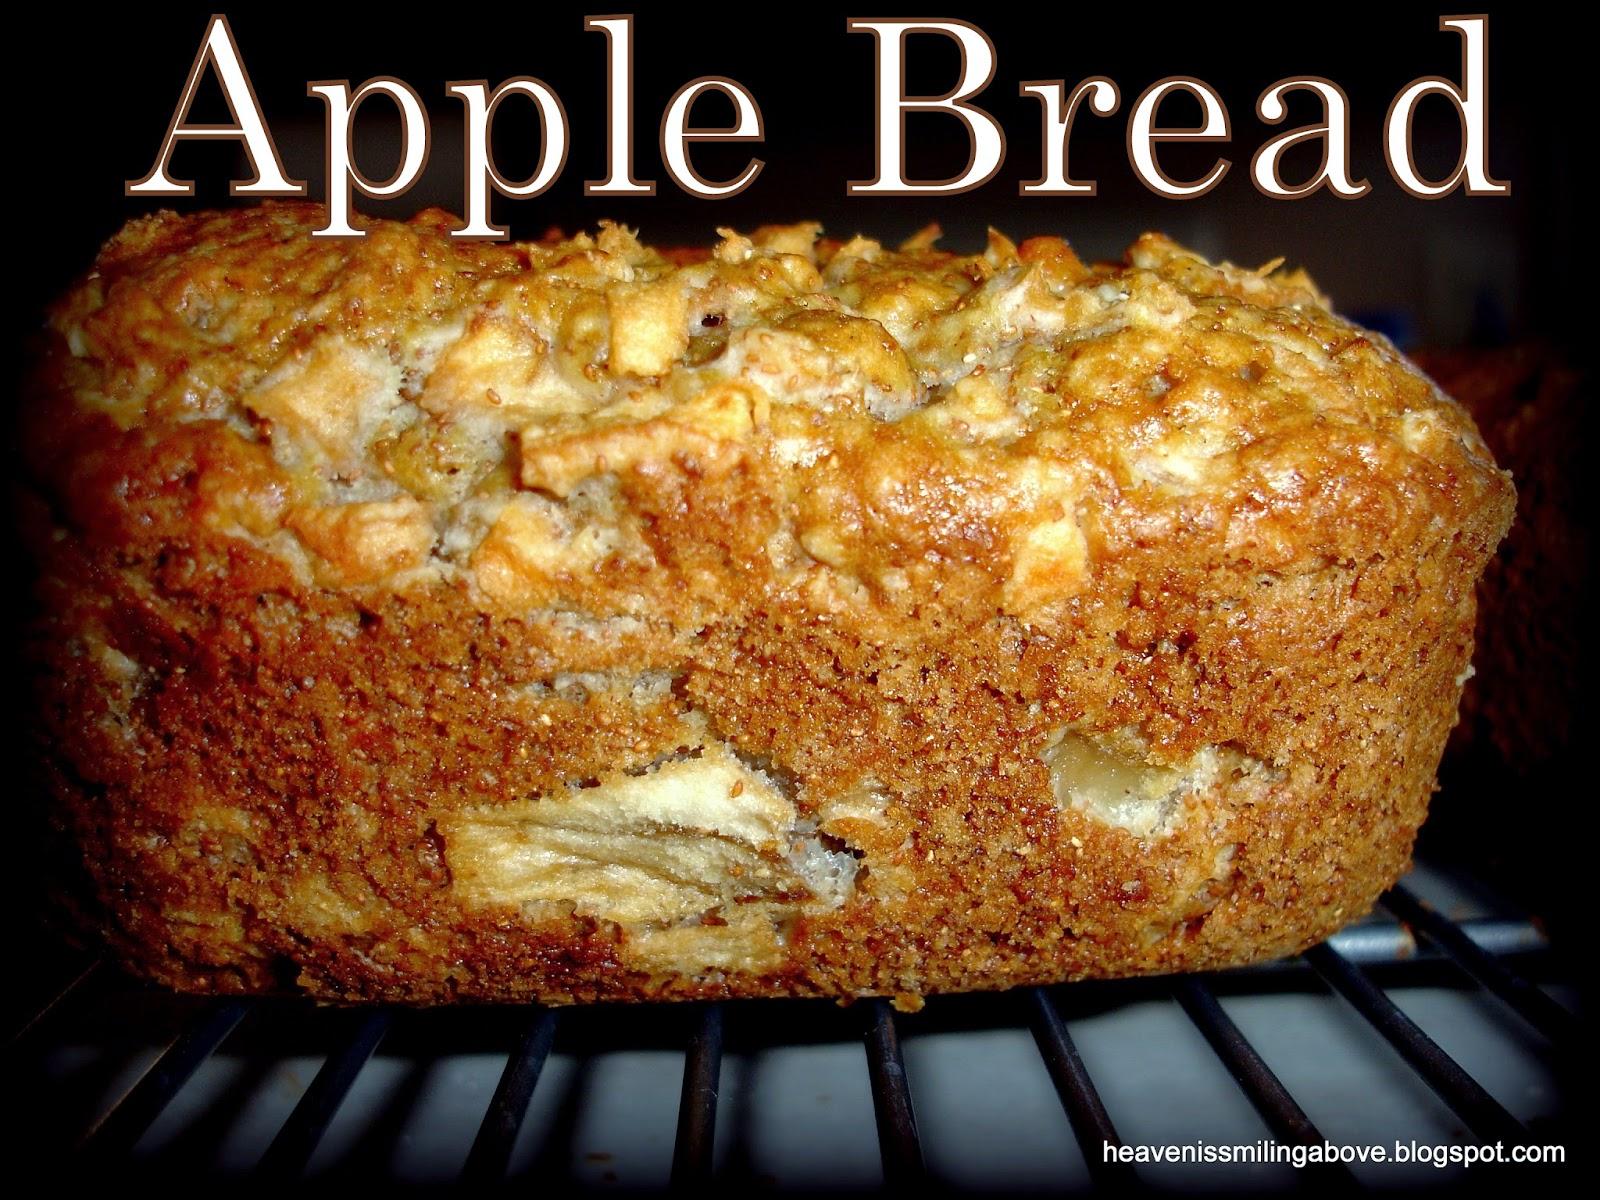 Apple Bread Heaven is Smiling Above